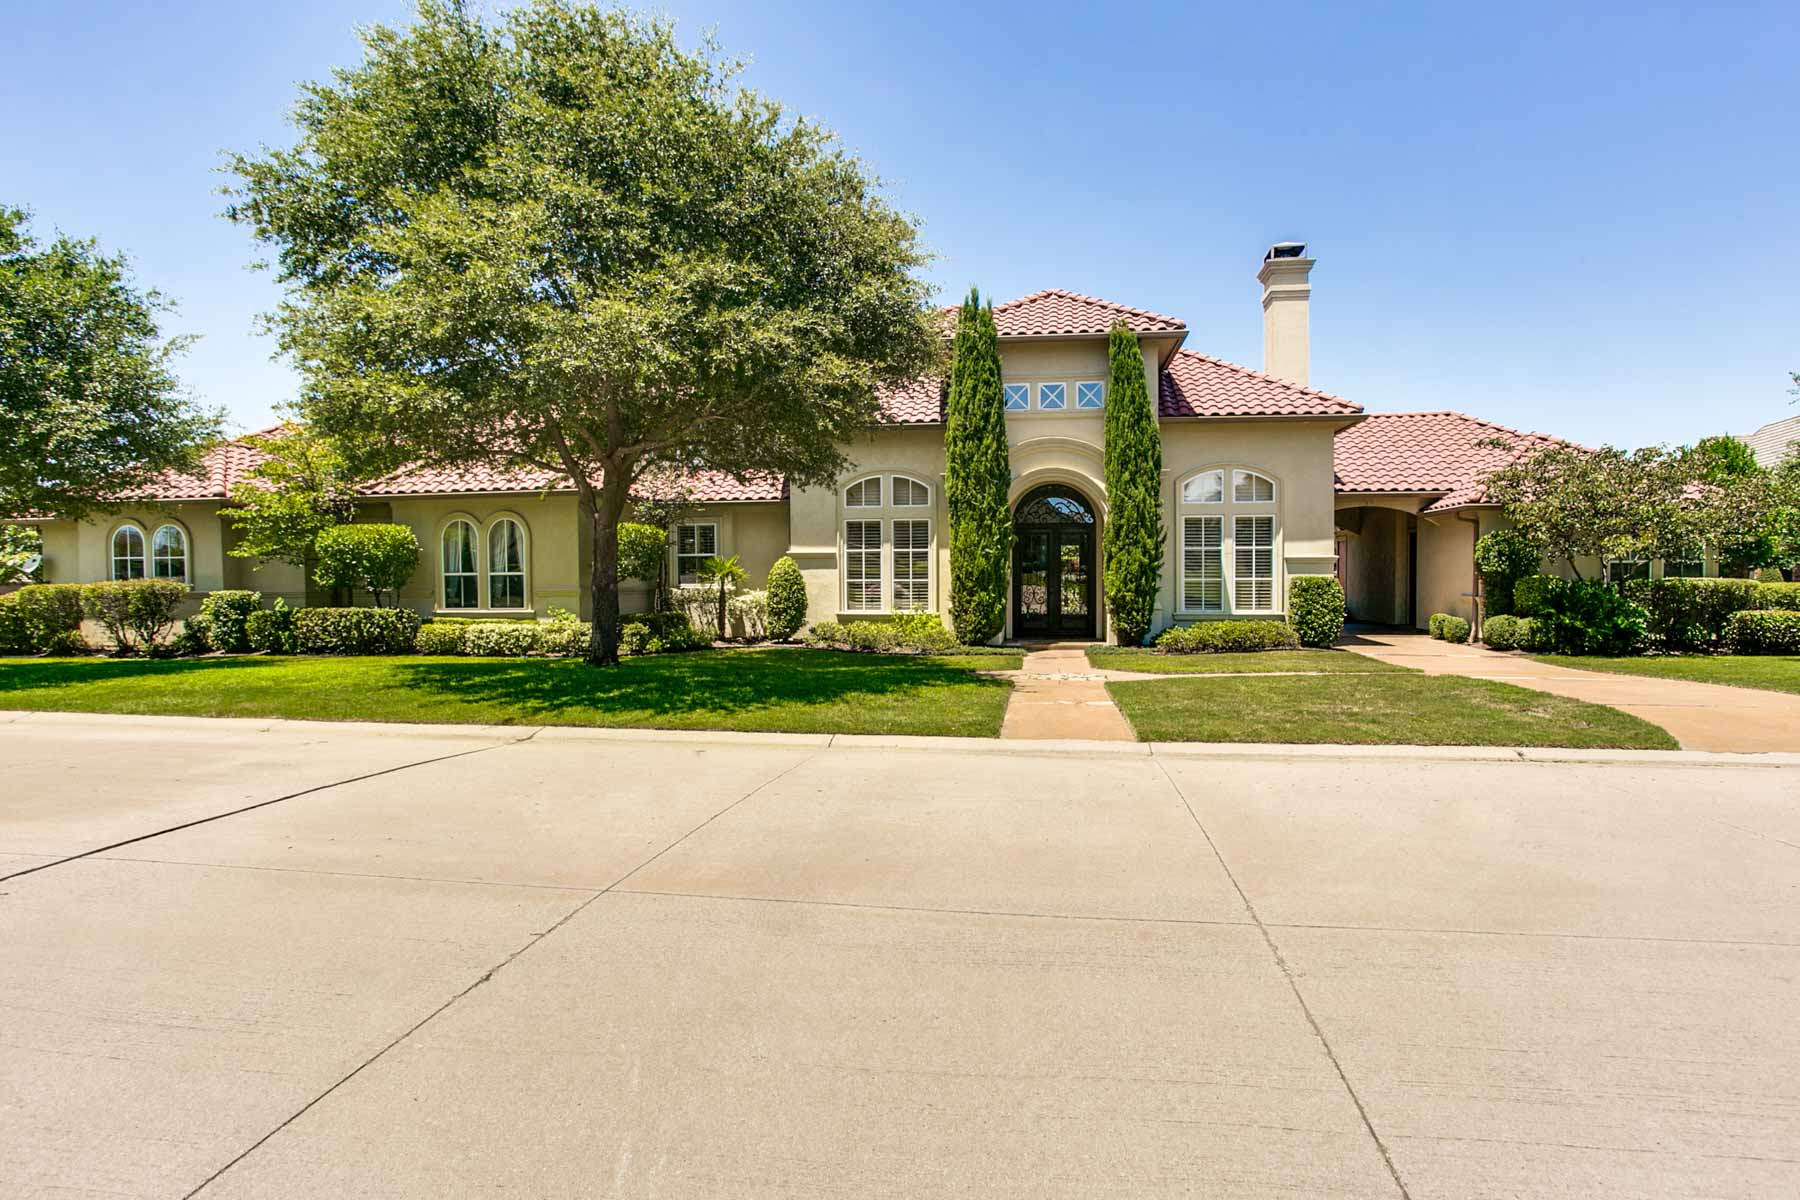 Casa Unifamiliar por un Venta en Exclusive Mira Vista Guard Gated Community 6729 Harbour Town Lane Fort Worth, Texas, 76132 Estados Unidos